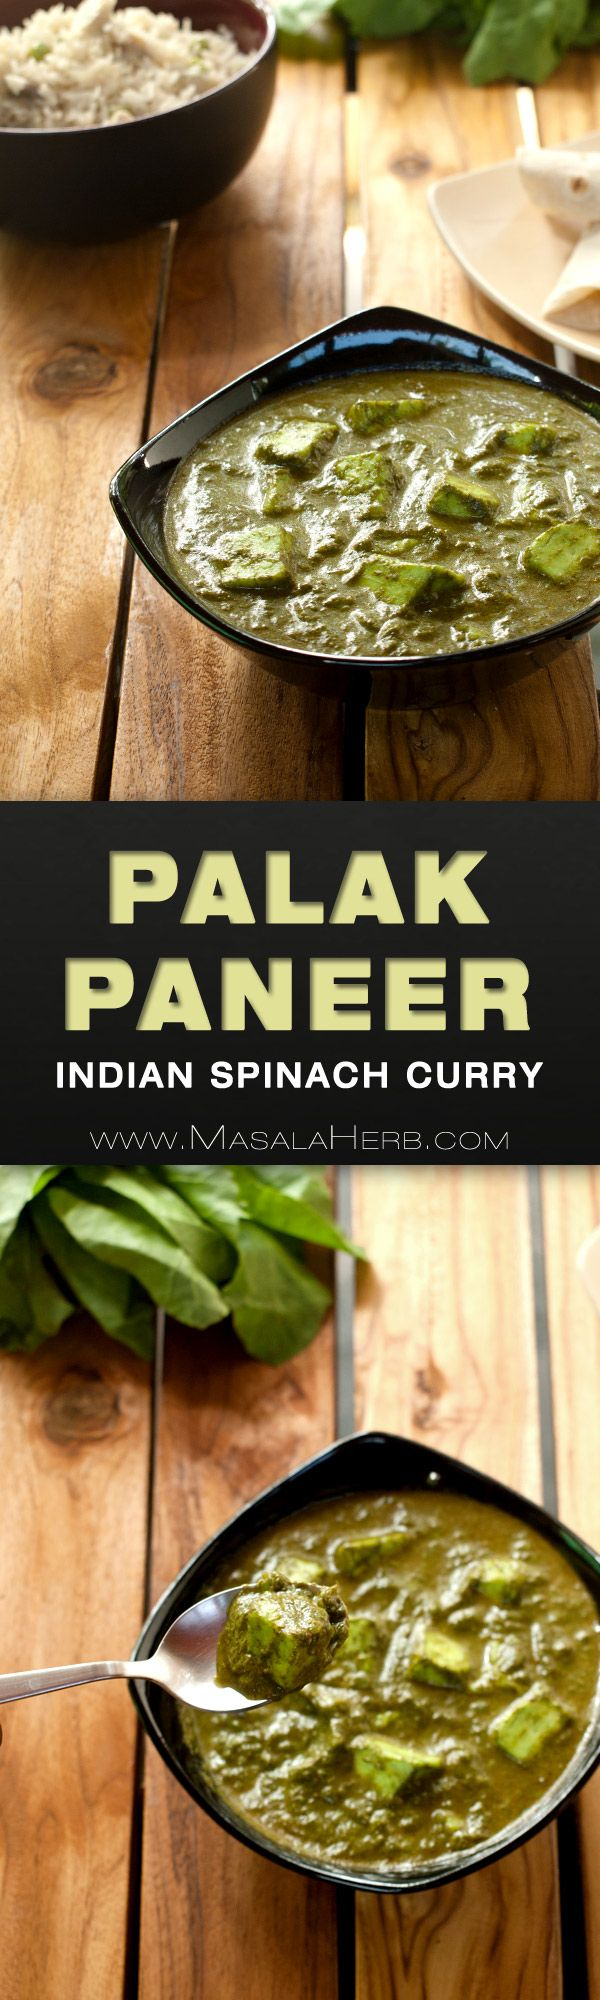 Palak Paneer Recipe - How to make Nutritious Indian Spinach Curry [Vegetarian] with indian cottage cheese. A creamy velvety green curry stuffed with proteins and gorgeous spices. You can make this palak paneer recipe easily at home with the how to and step by step instructions. www.MasalaHerb.com #curry #indian #healthy #masalaherb